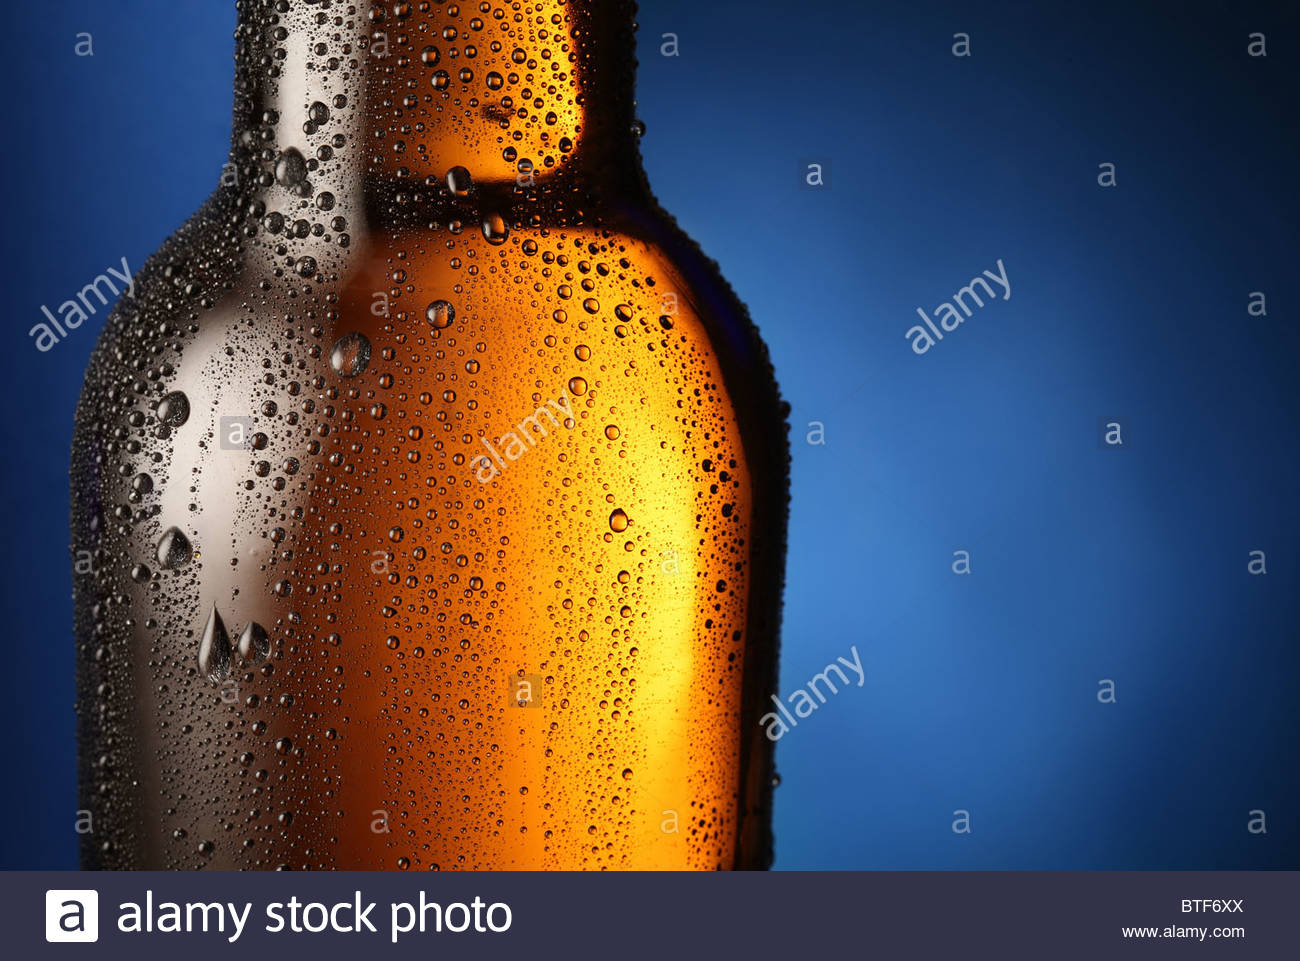 Bottle of beer with drops on a blue background Close up part of 1300x961